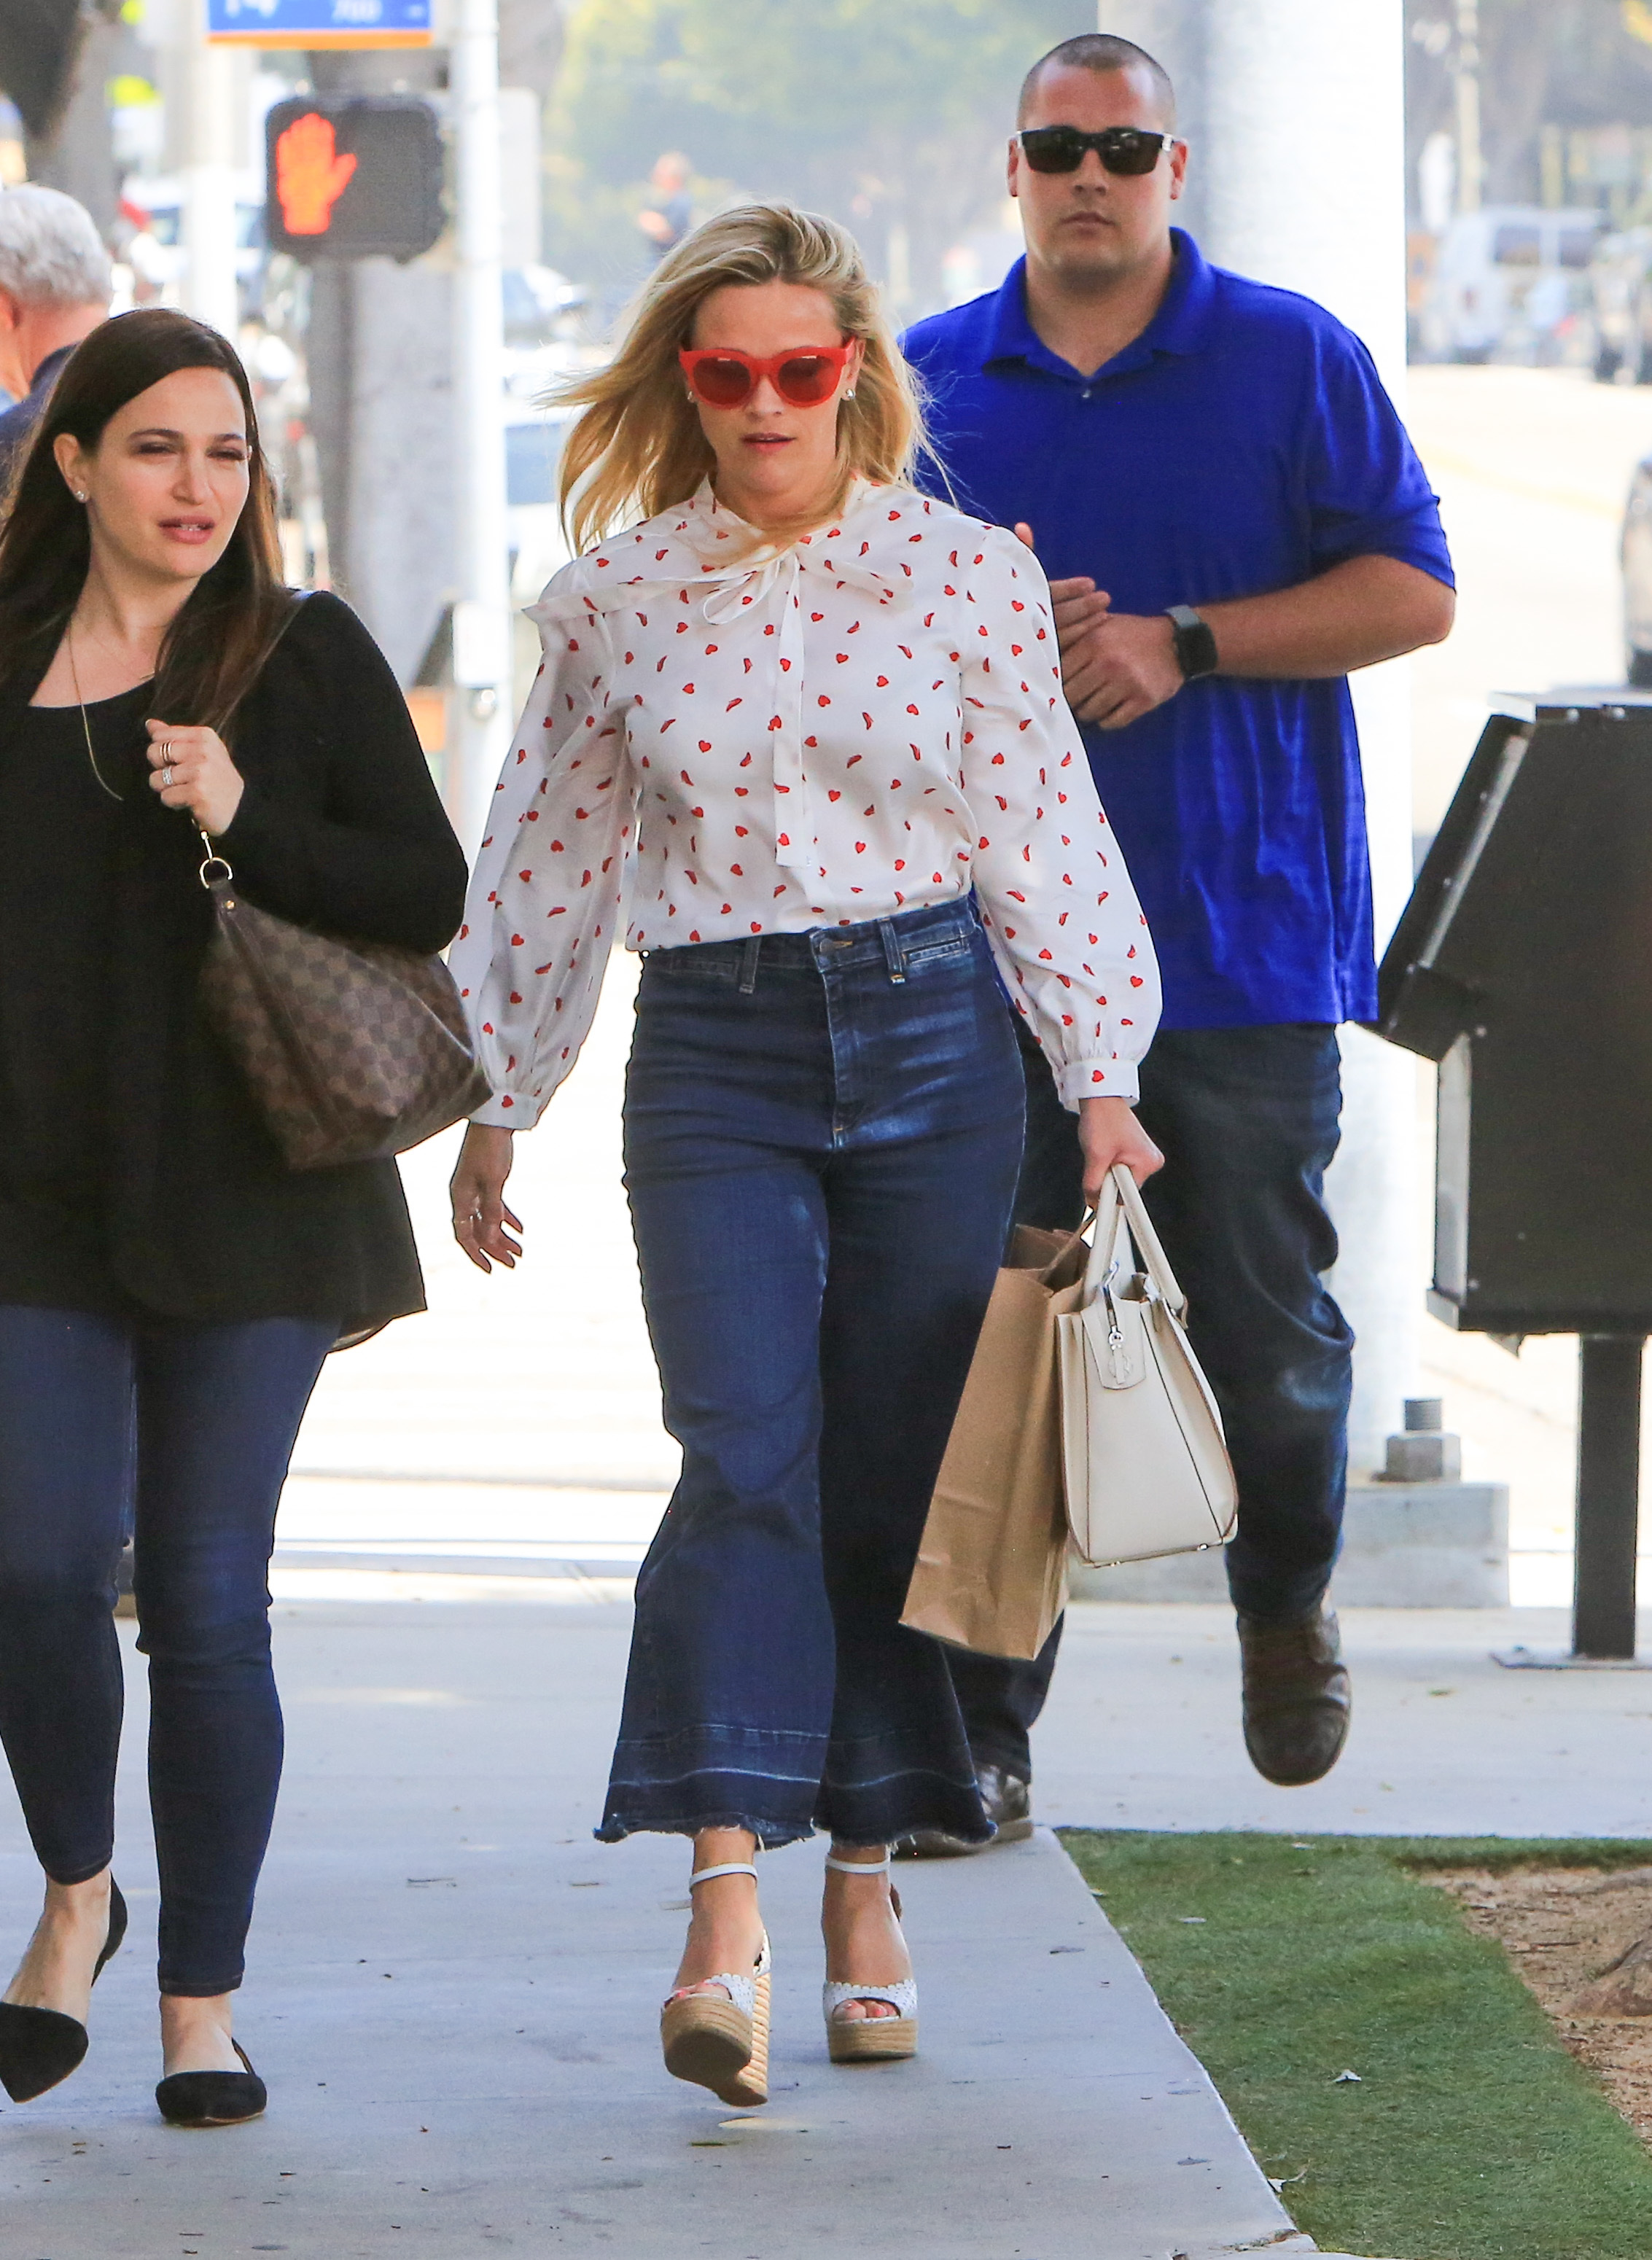 Reese Witherspoon is spotted out and about in Los Angeles on April 23, 2018.